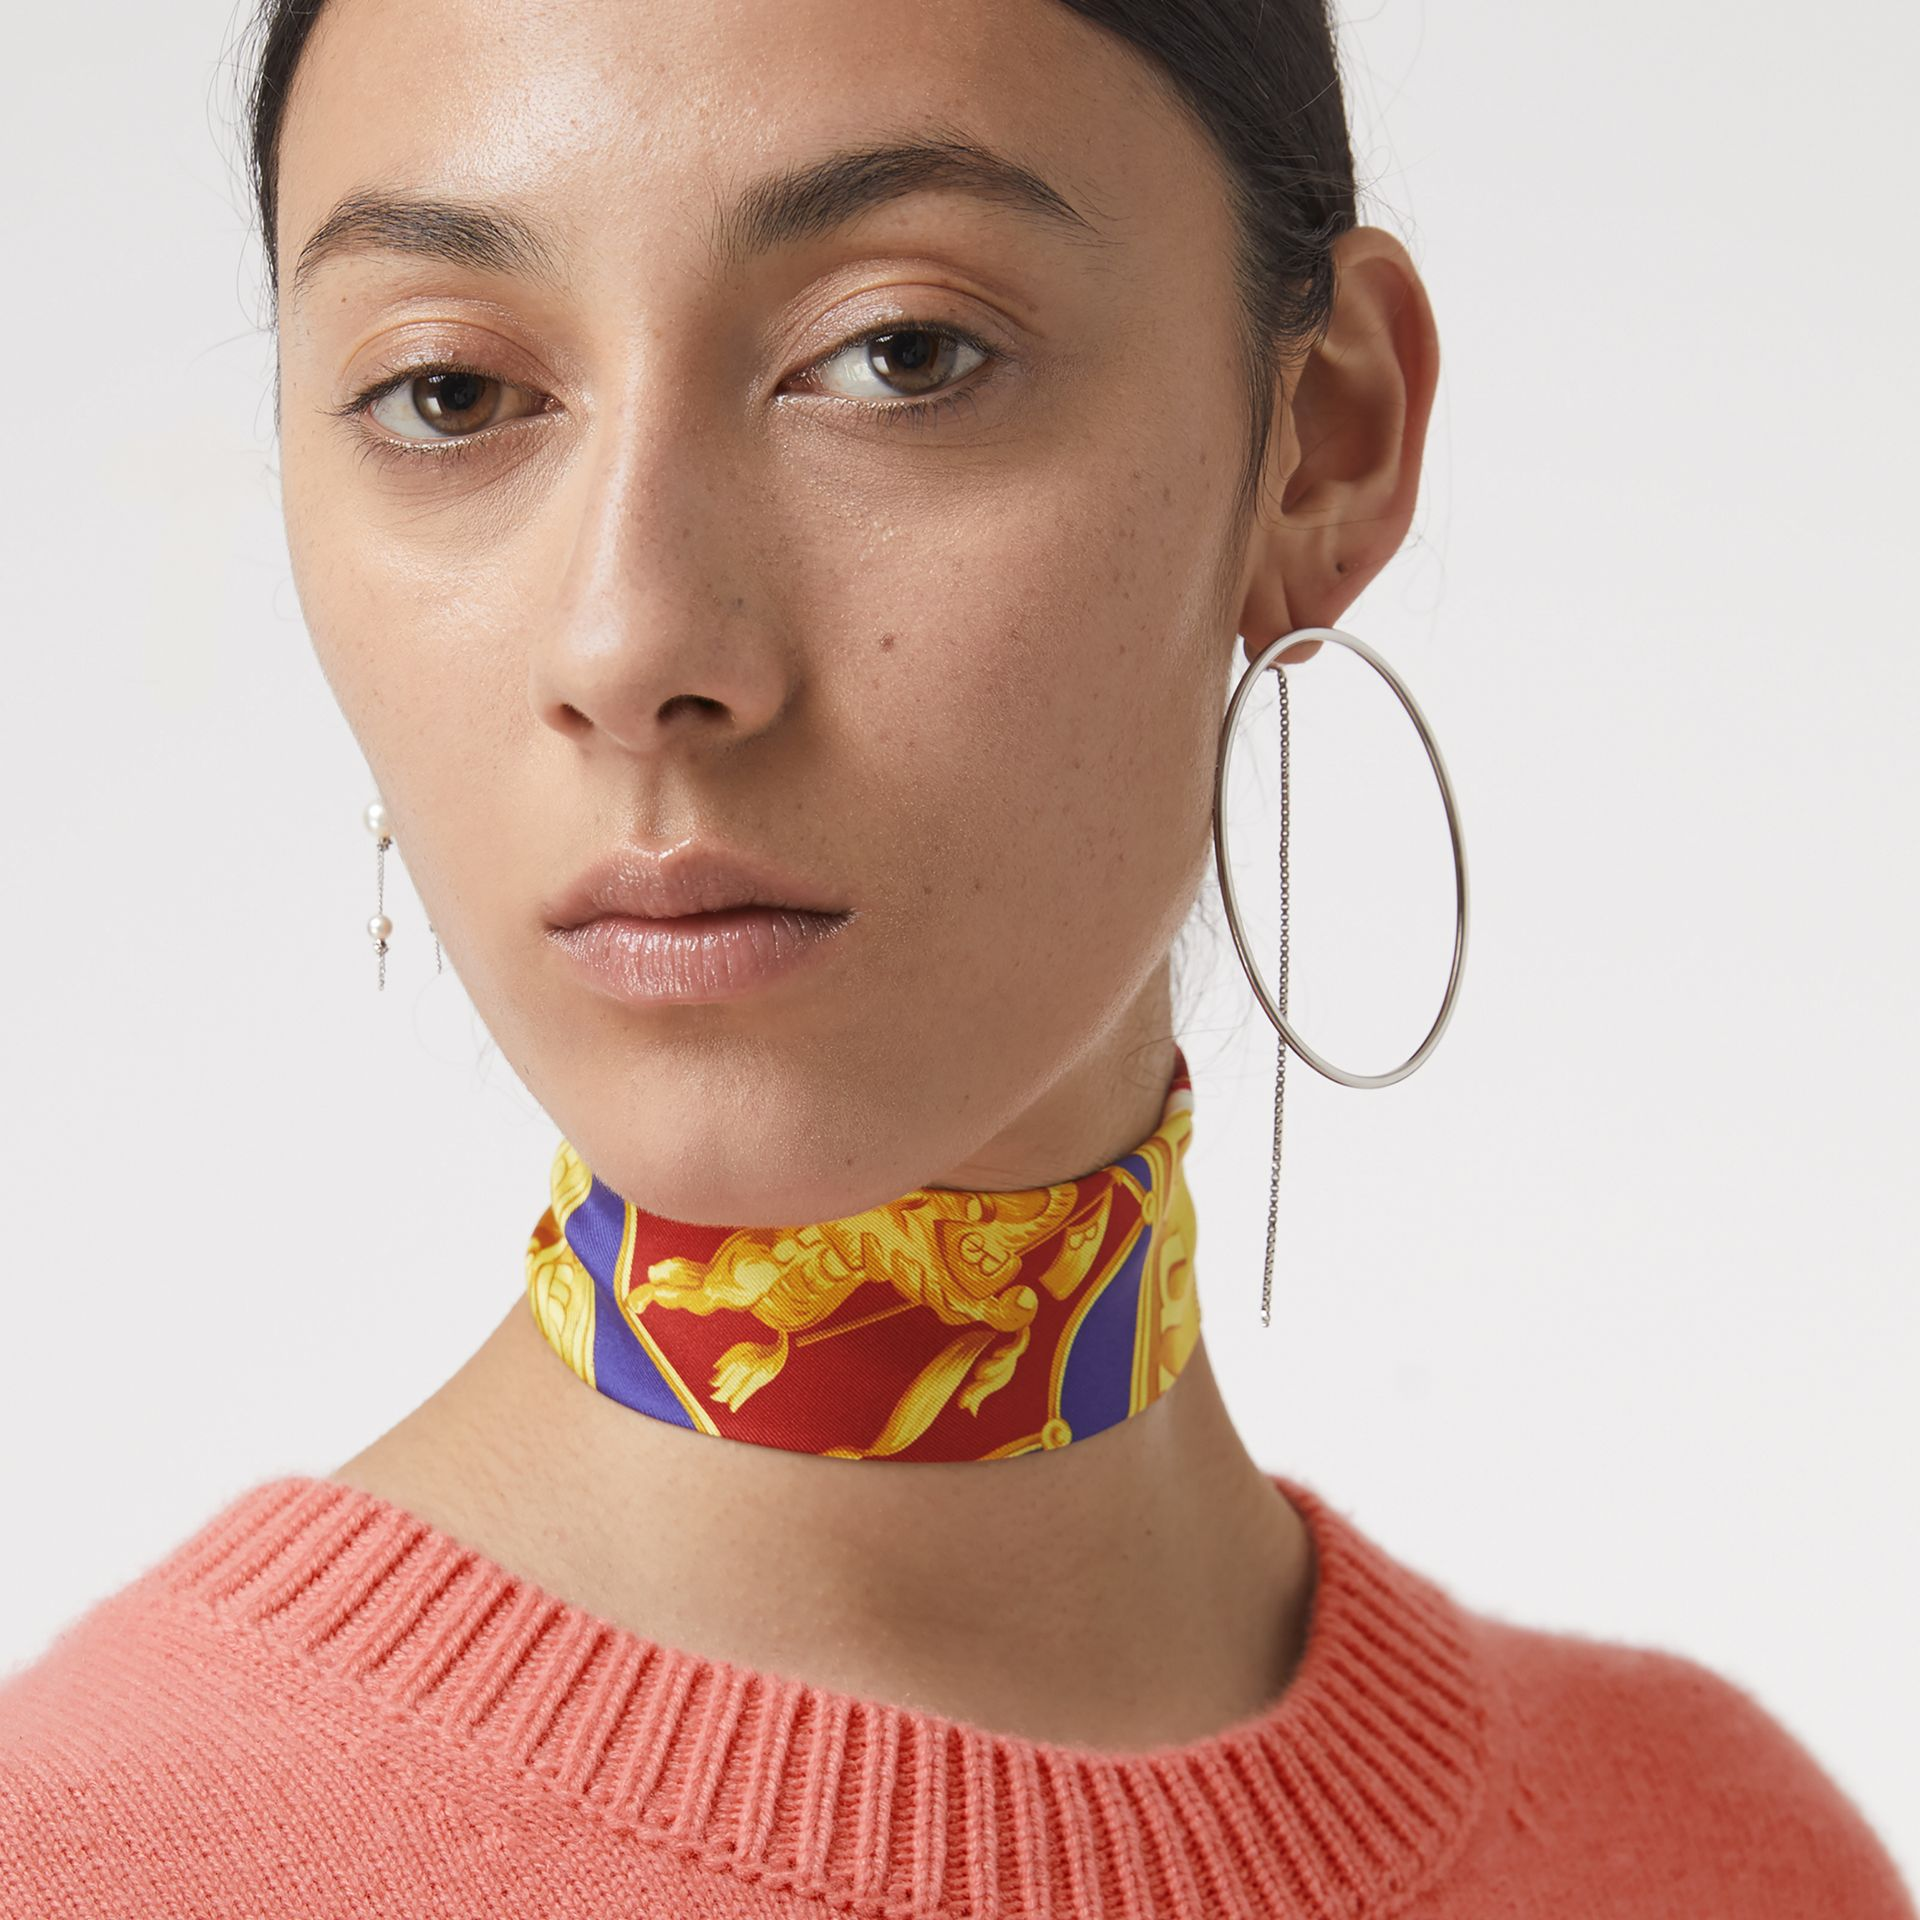 Archive Scarf Print Silk Skinny Scarf in Multicolour | Burberry - gallery image 3